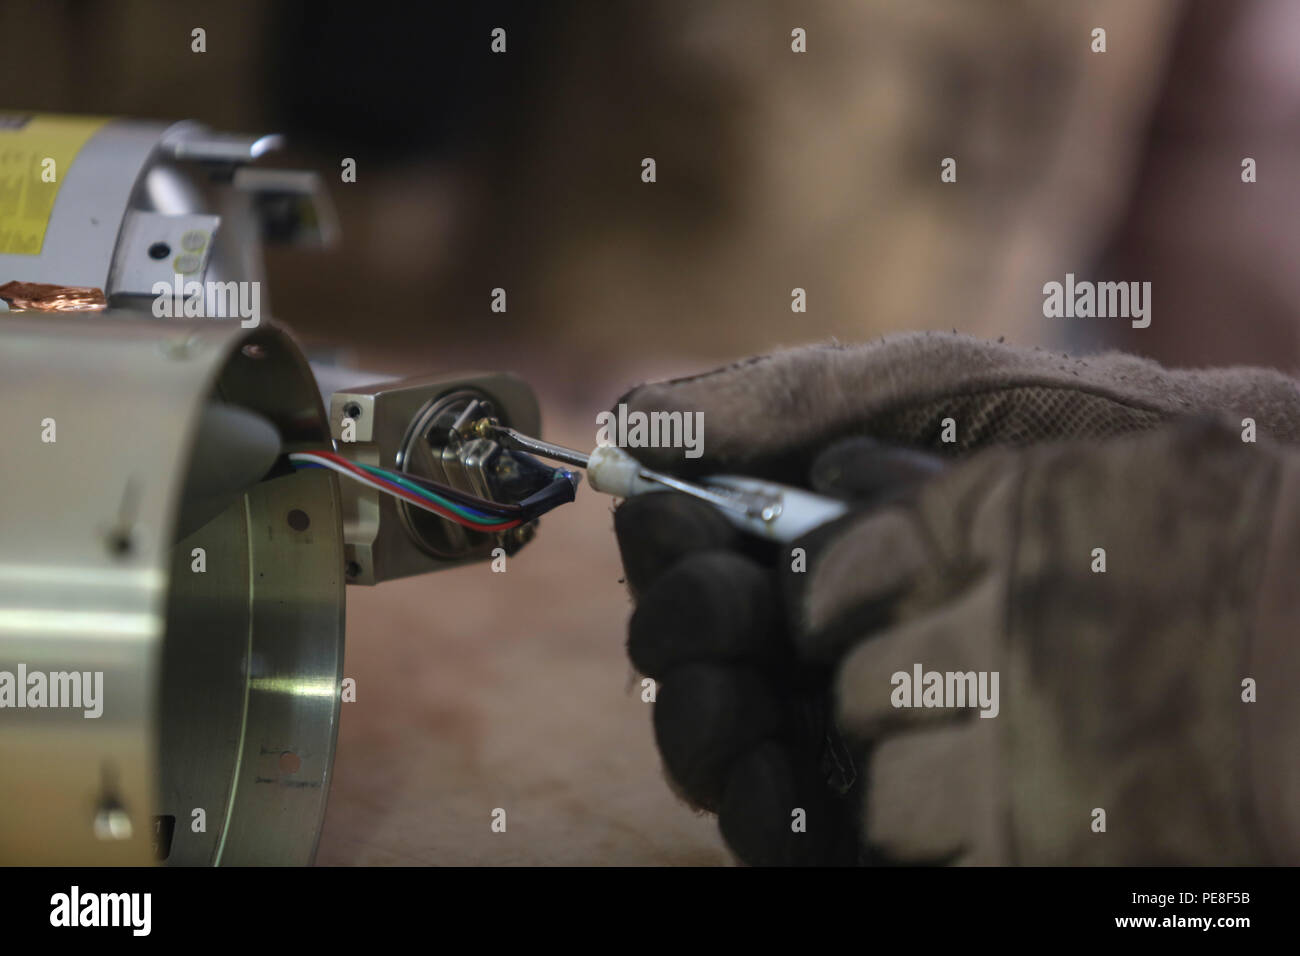 Wiring Harness Stock Photos Images Alamy Automotive Tools A Marine With Explosive Ordnance Disposal Company Uses Special Tool To Remove